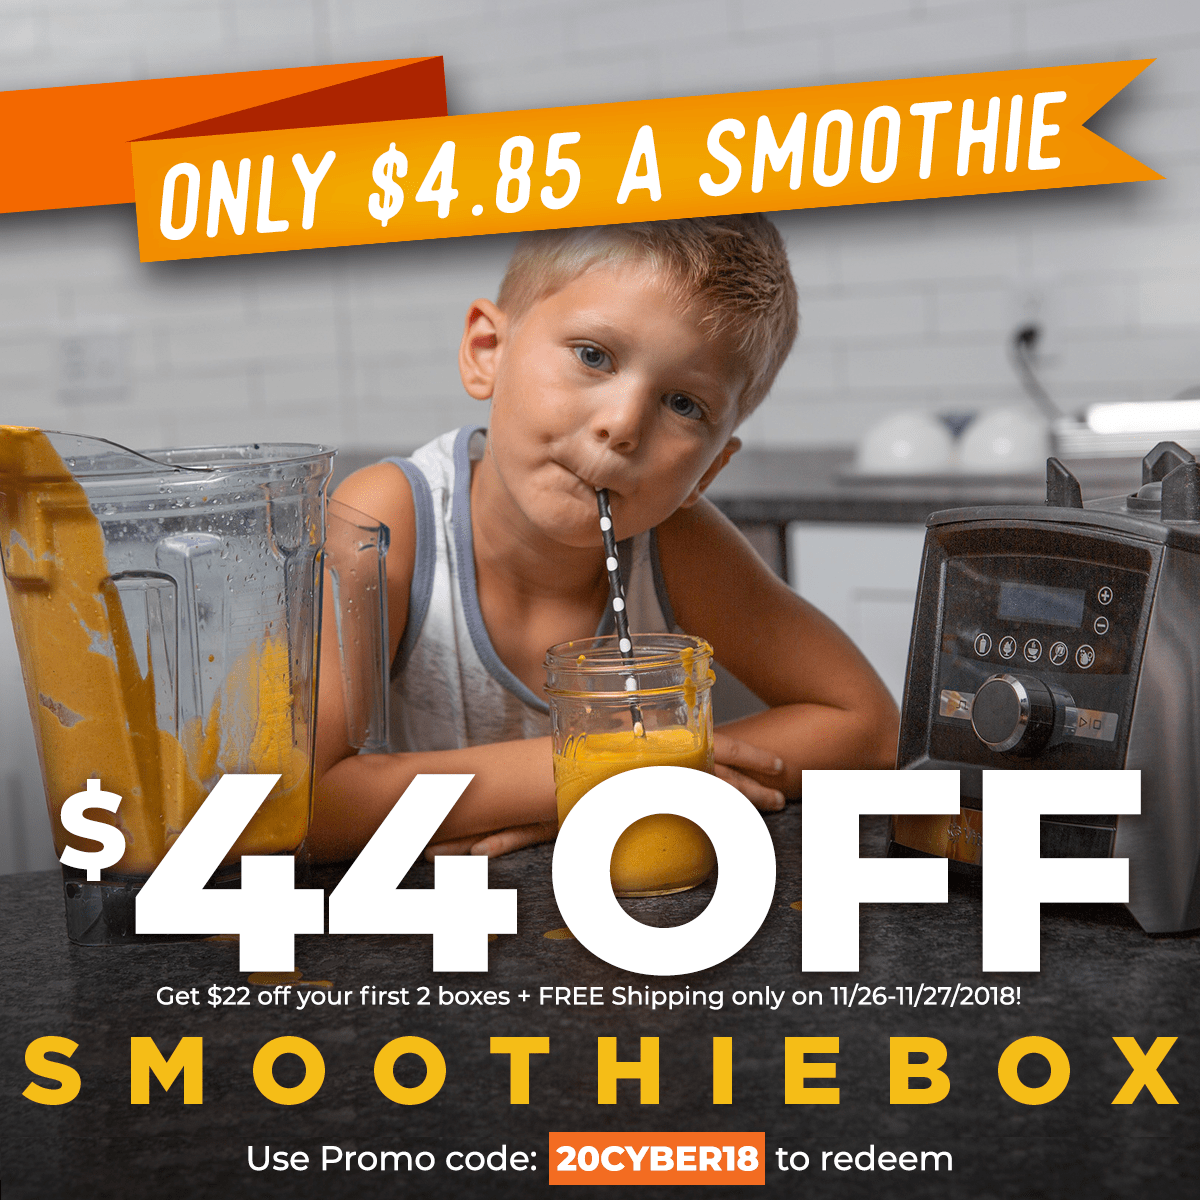 SmoothieBox Cyber Monday Coupon: Get $22 Off Your First Two Boxes + FREE Shipping!